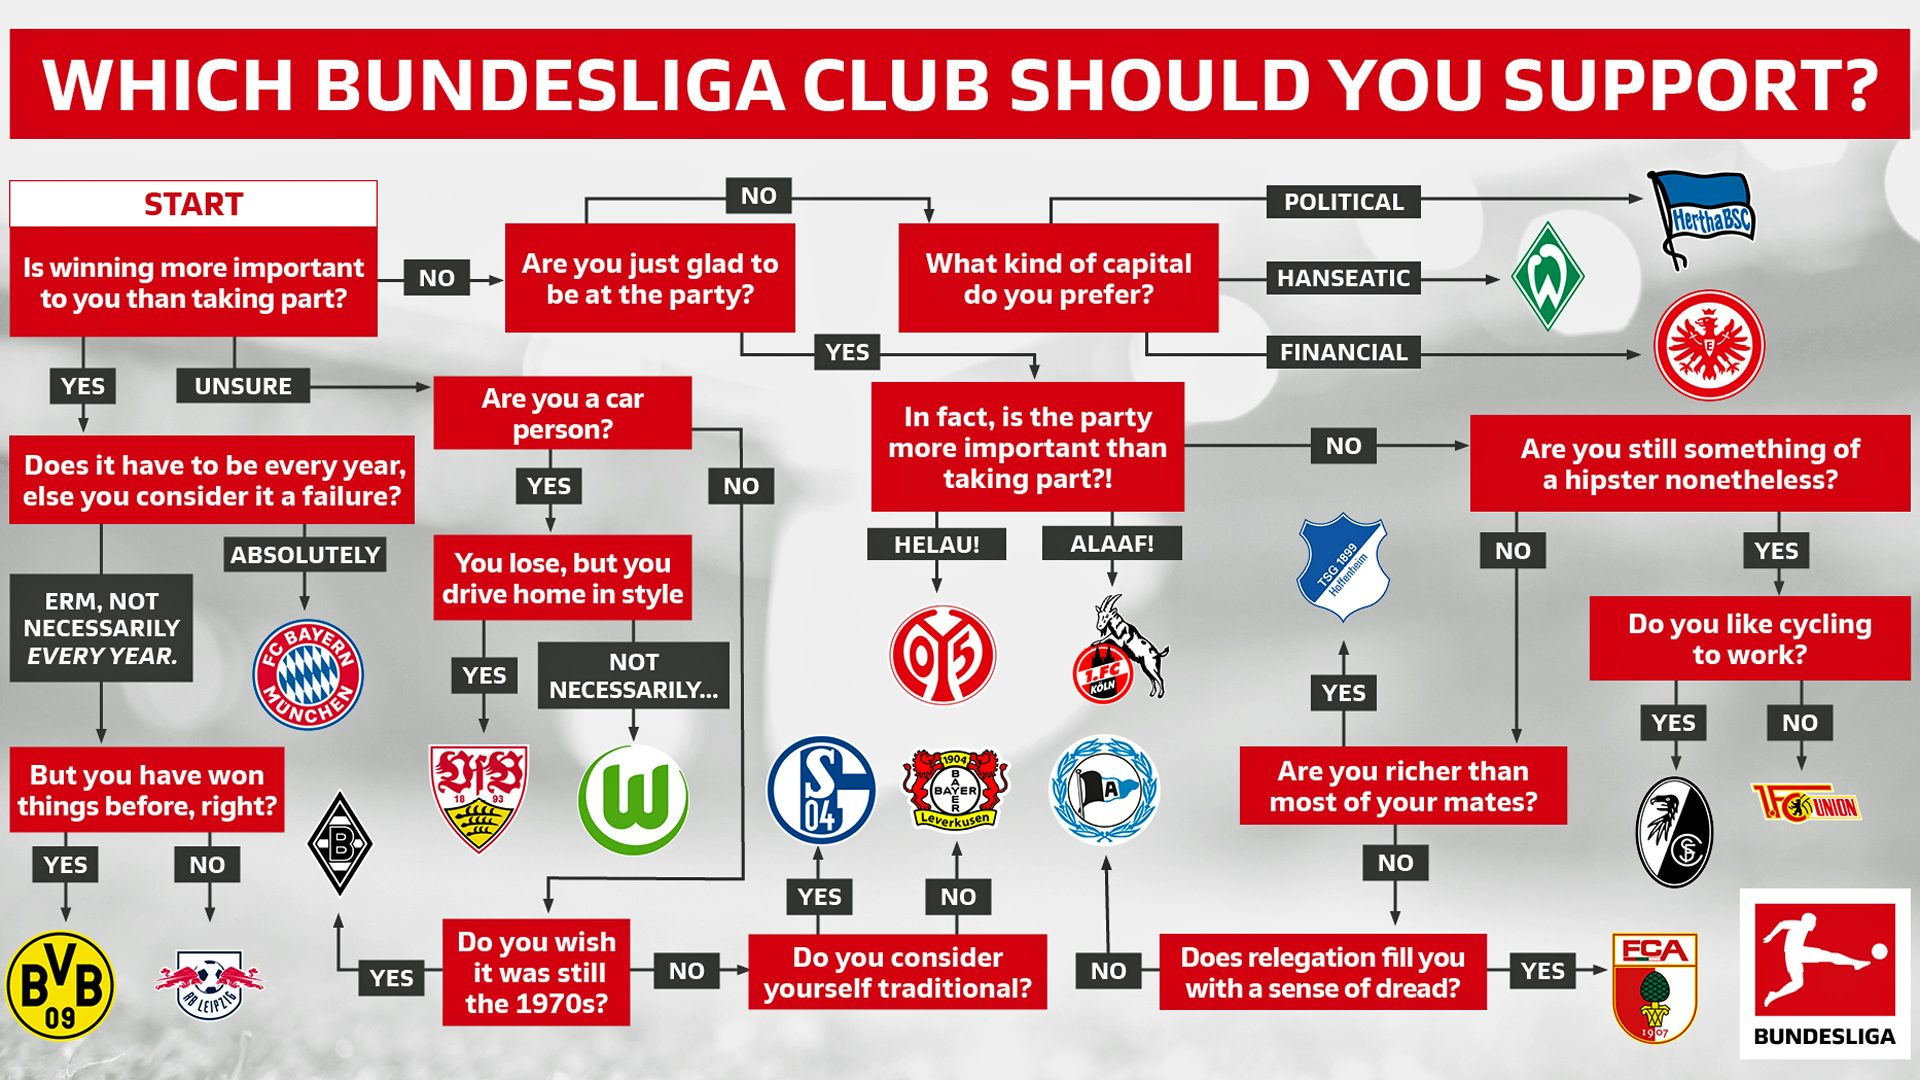 bundesliga which bundesliga club should i support which bundesliga club should i support